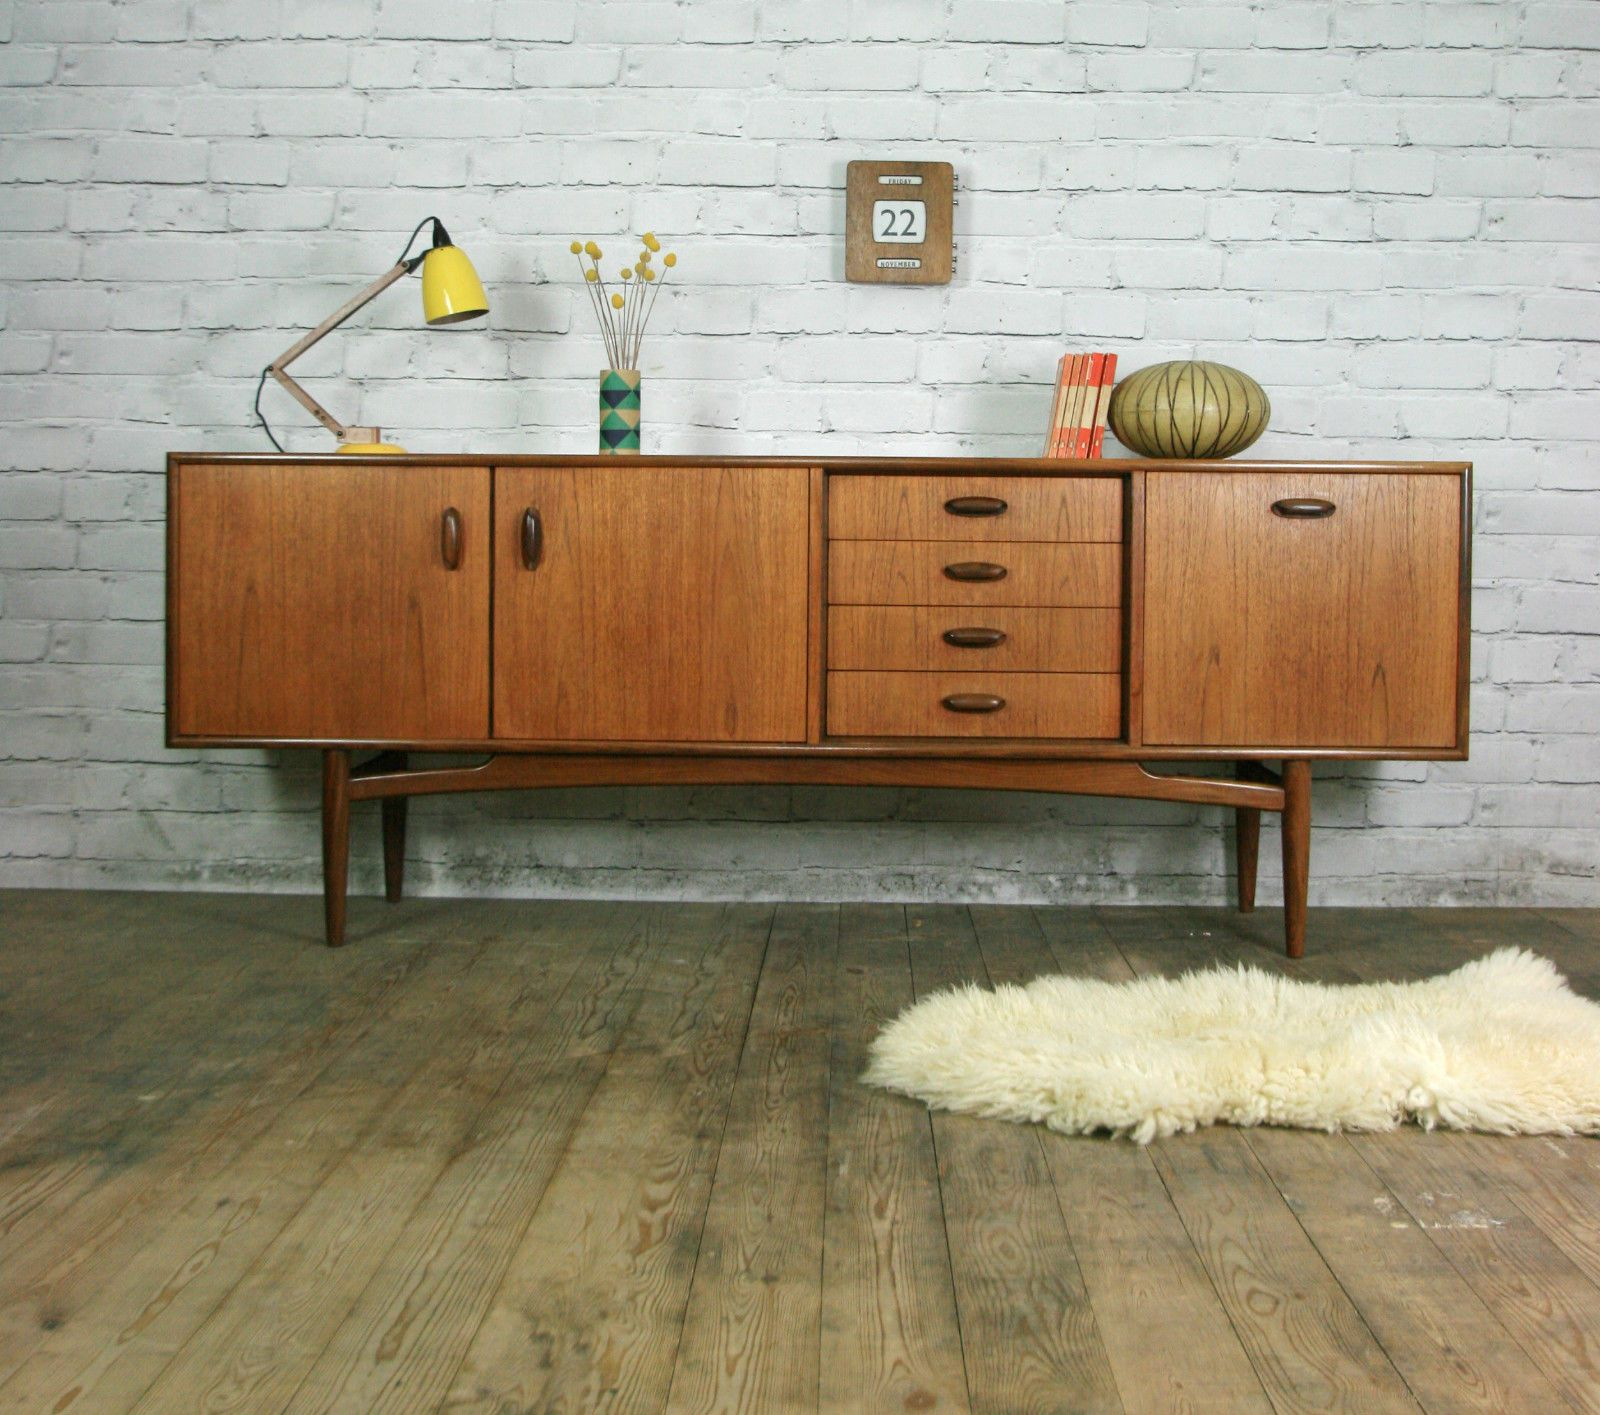 g plan retro vintage teak mid century sideboard eames era. Black Bedroom Furniture Sets. Home Design Ideas